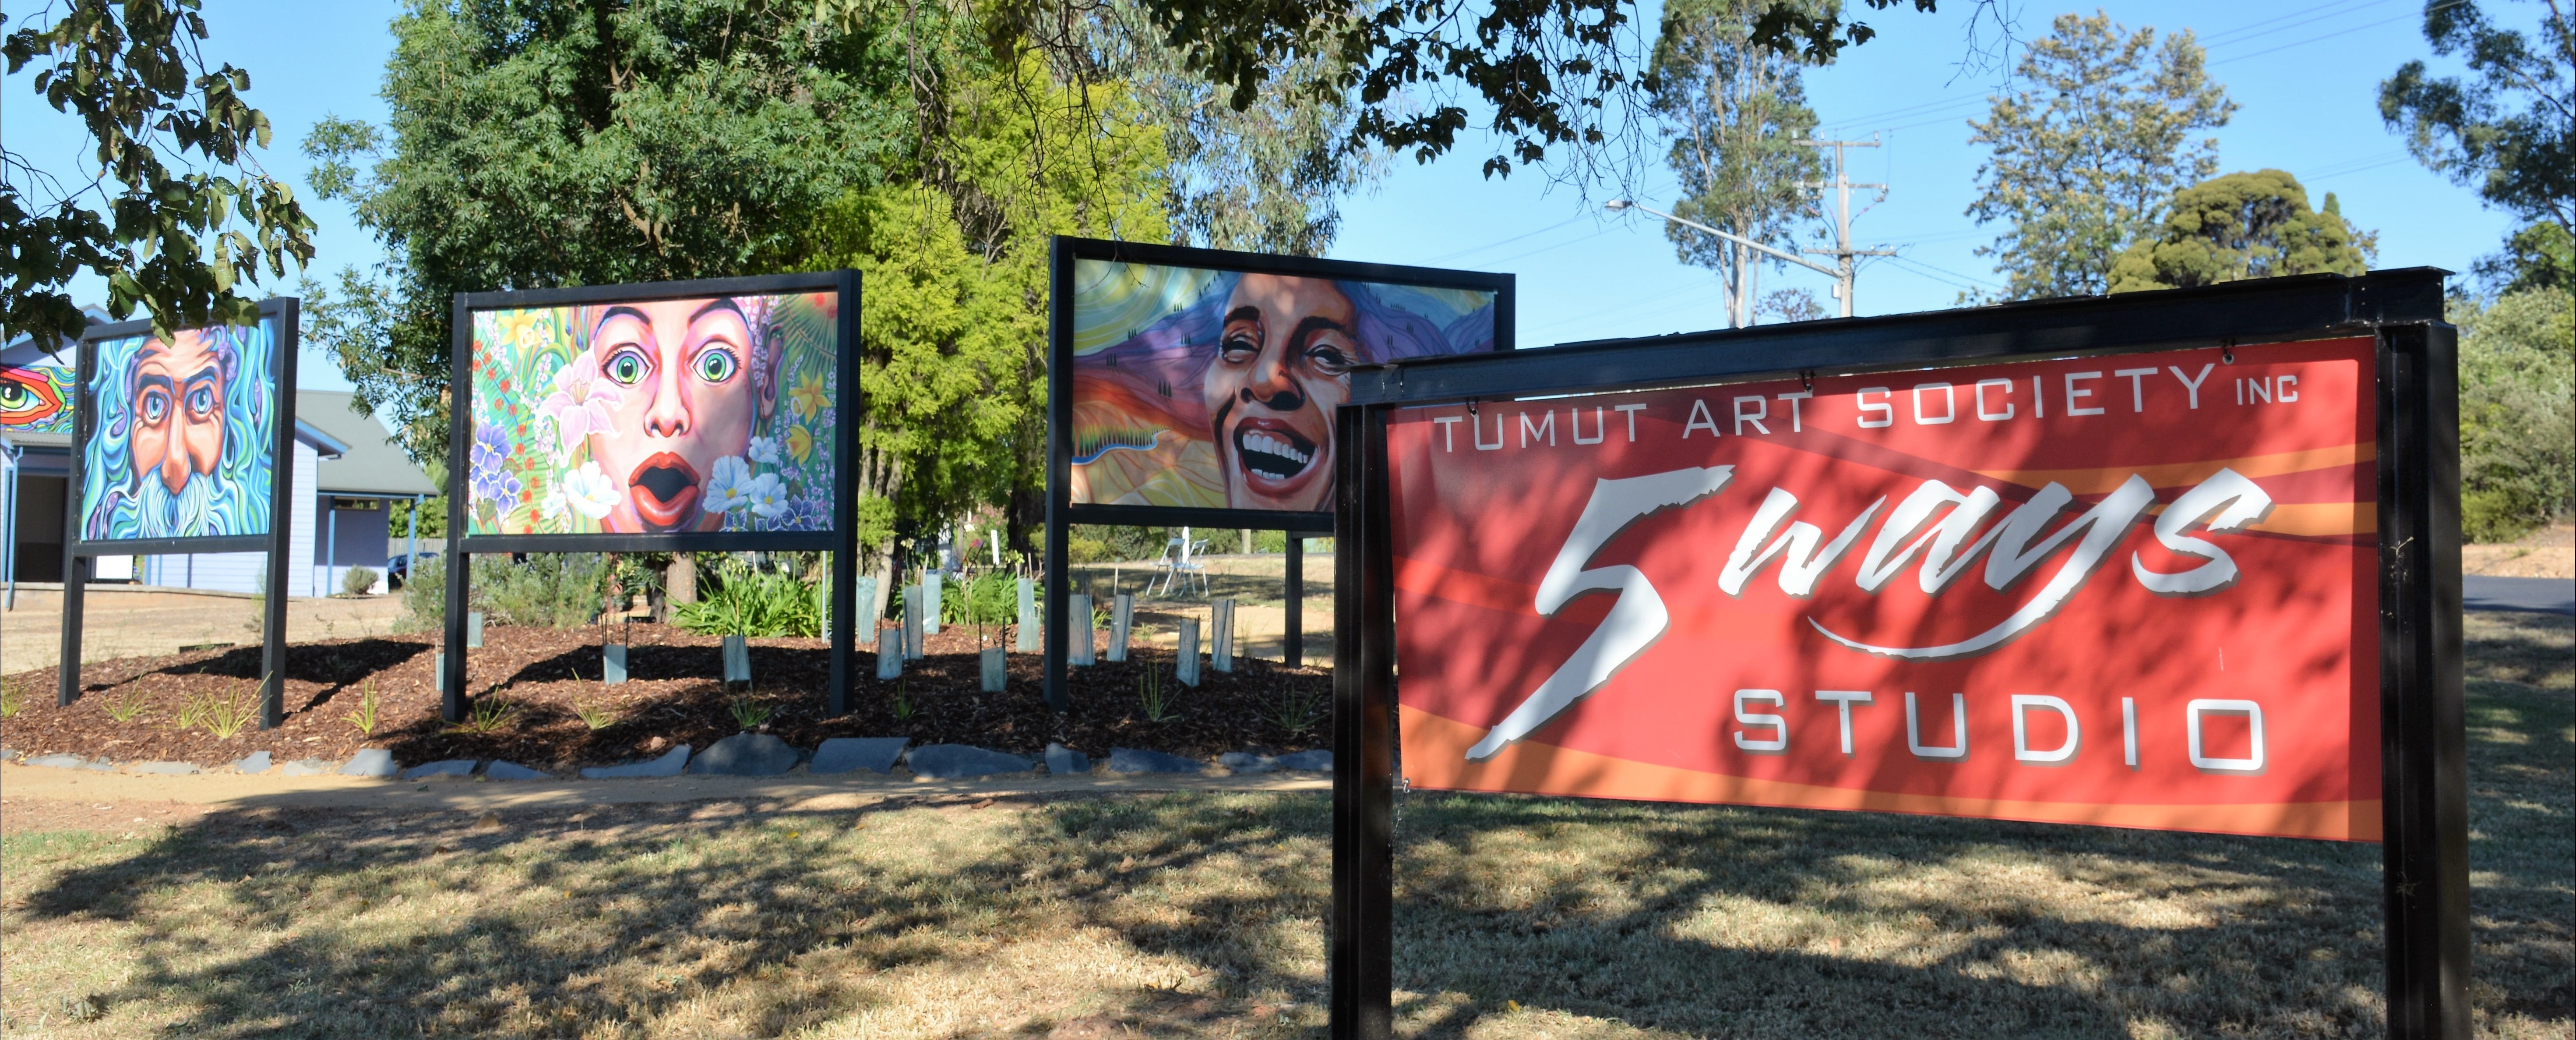 Tumut Art Society 5Ways Gallery - Accommodation QLD